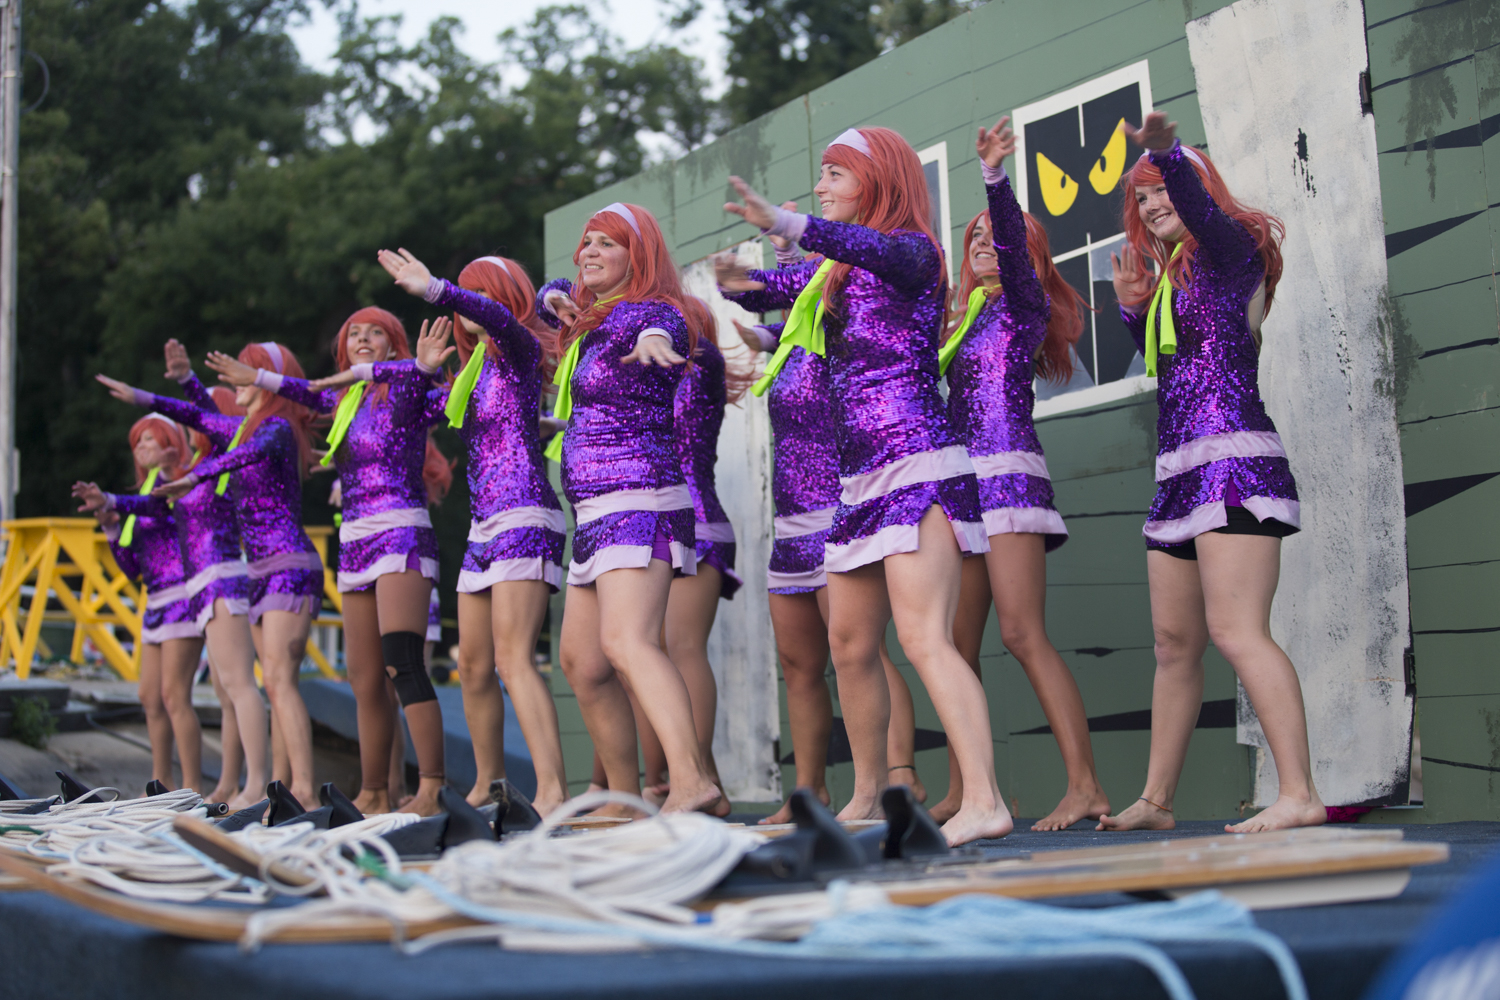 """Team members portraying the """"Daphne"""" character, perform the dock dance portion of the ballet line group. The ballet line comprises three dance elements: on the dock, on water skis, and stage dance back on shore. [SCOTT P. YATES/RRSTAR.COM STAFF]"""